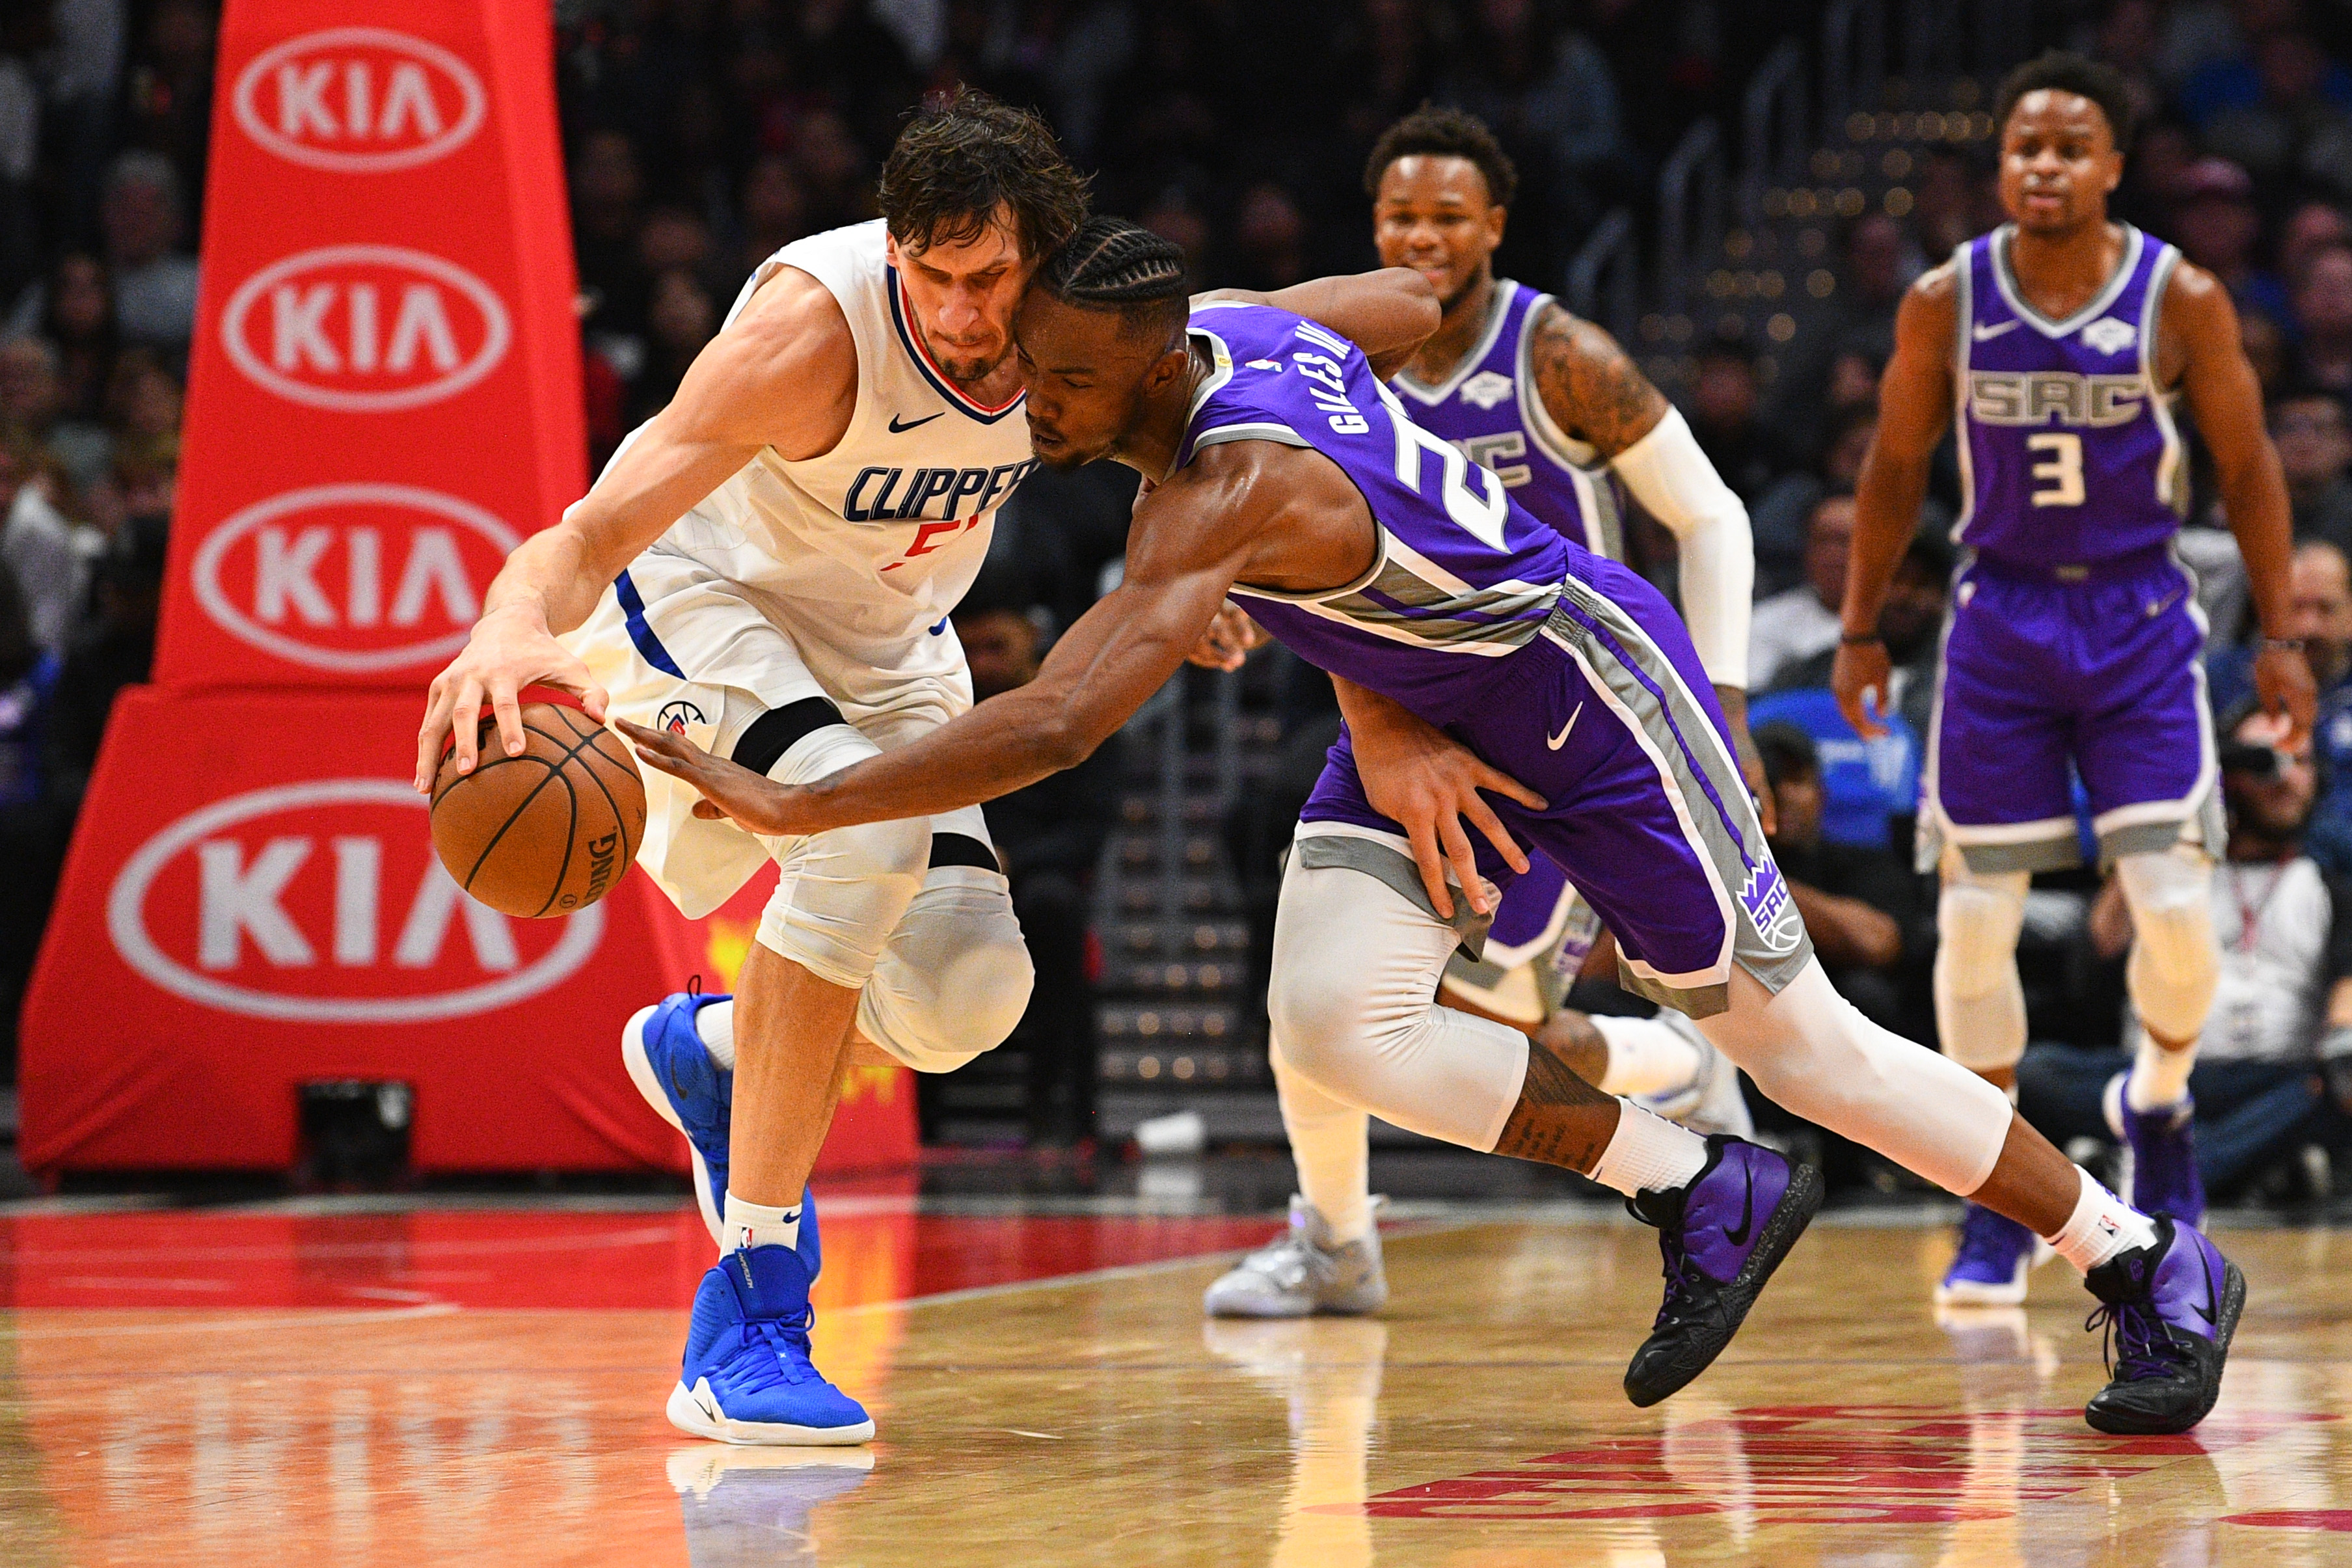 NBA: DEC 26 Kings at Clippers